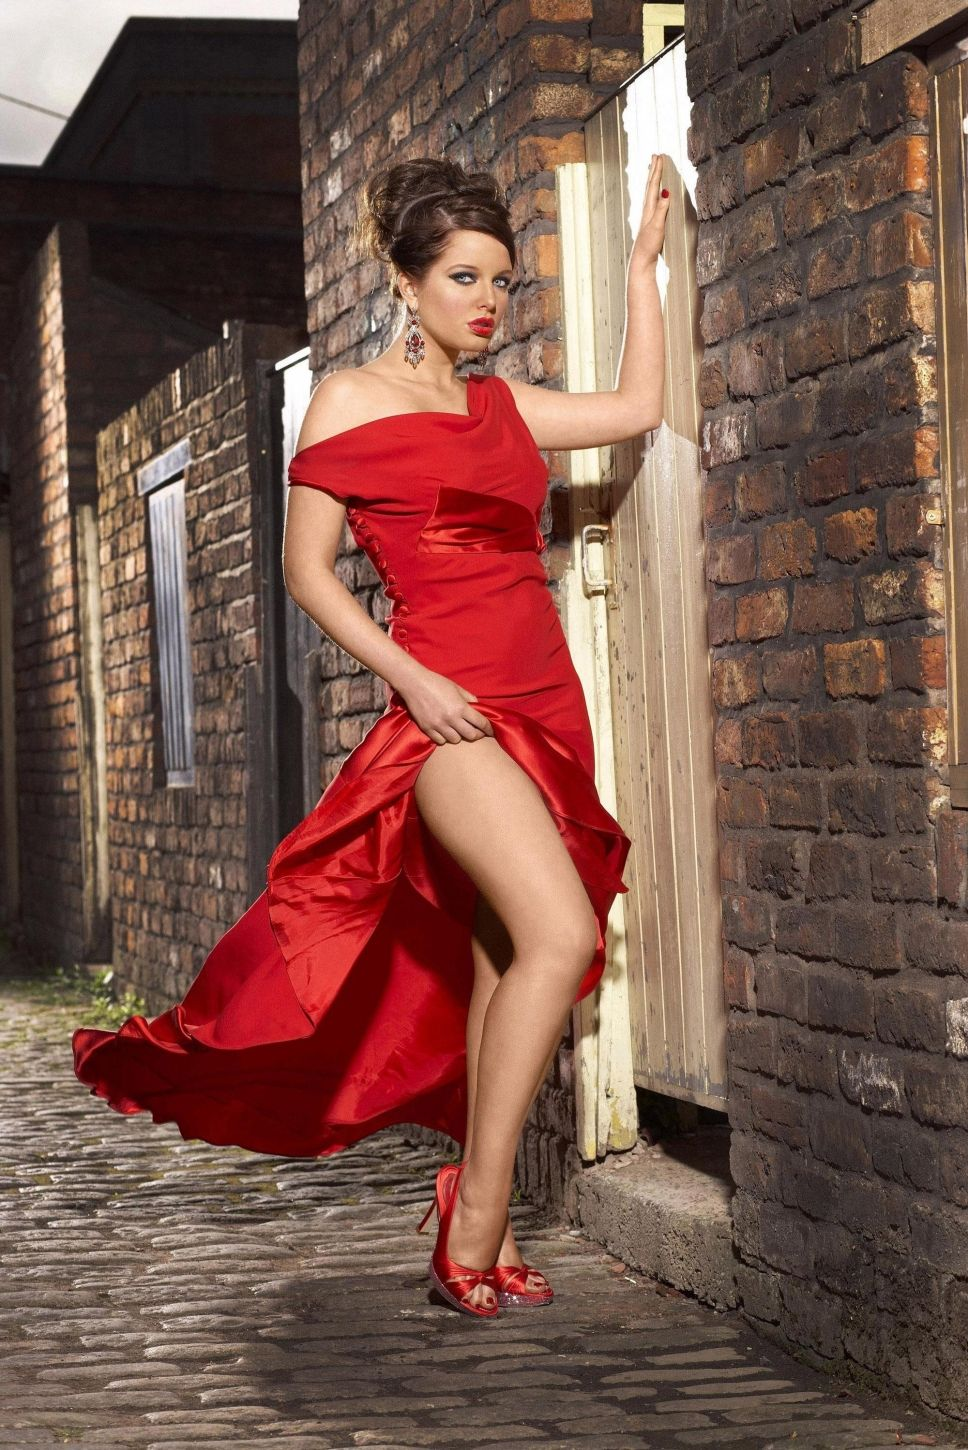 Picture of Helen Flanagan | Mixprod | Pinterest | Helen ...  Picture of Hele...